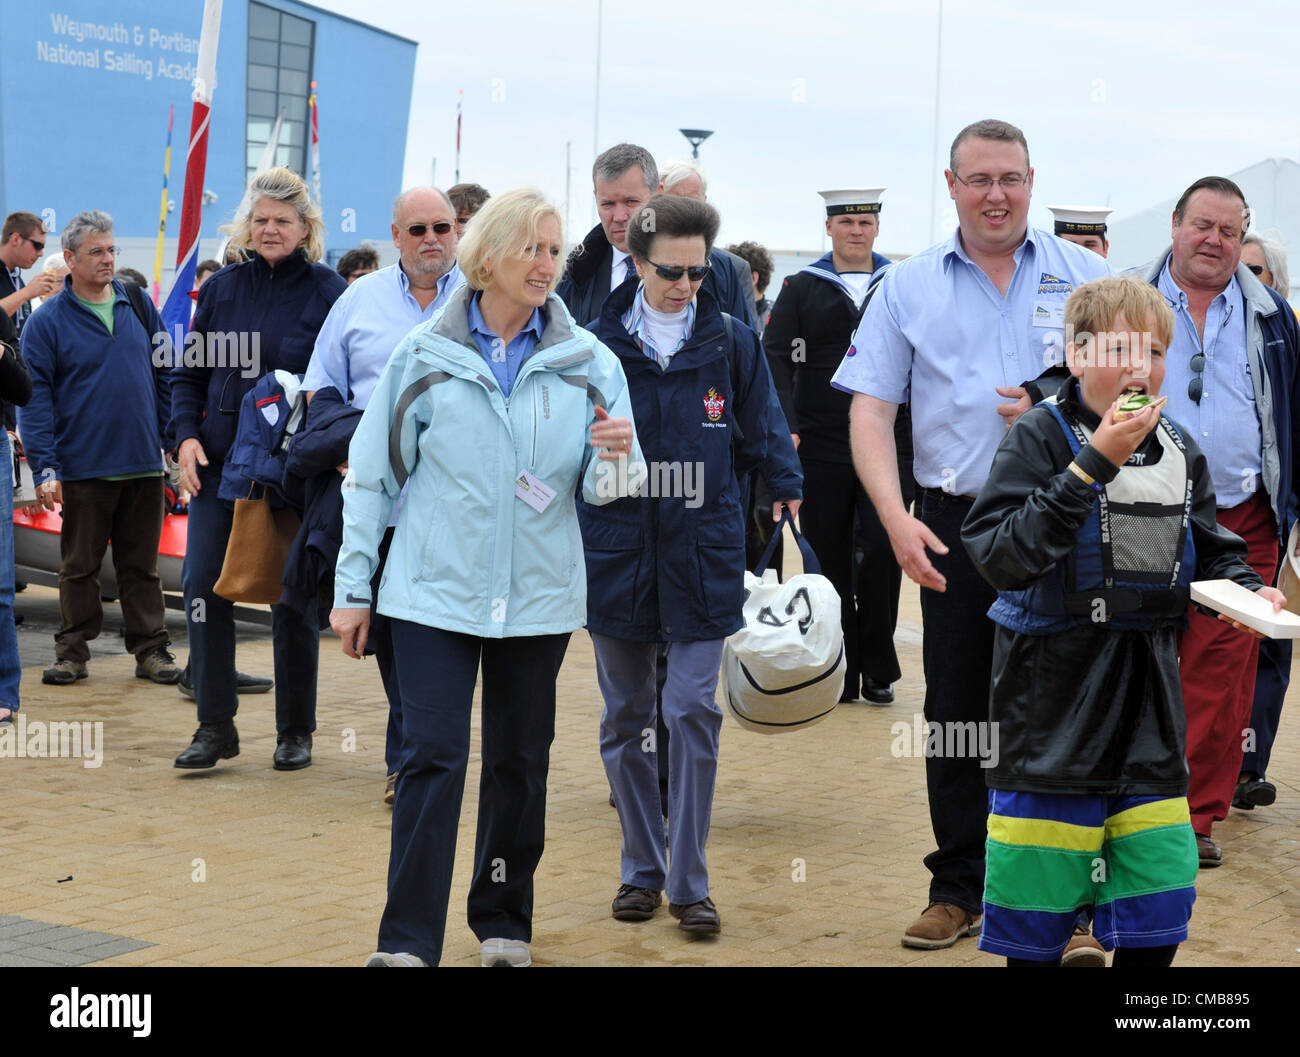 Princess Anne attending a schools regatta at the Weymouth and Portland National Sailing Academy, Dorset. Britain. - Stock Image